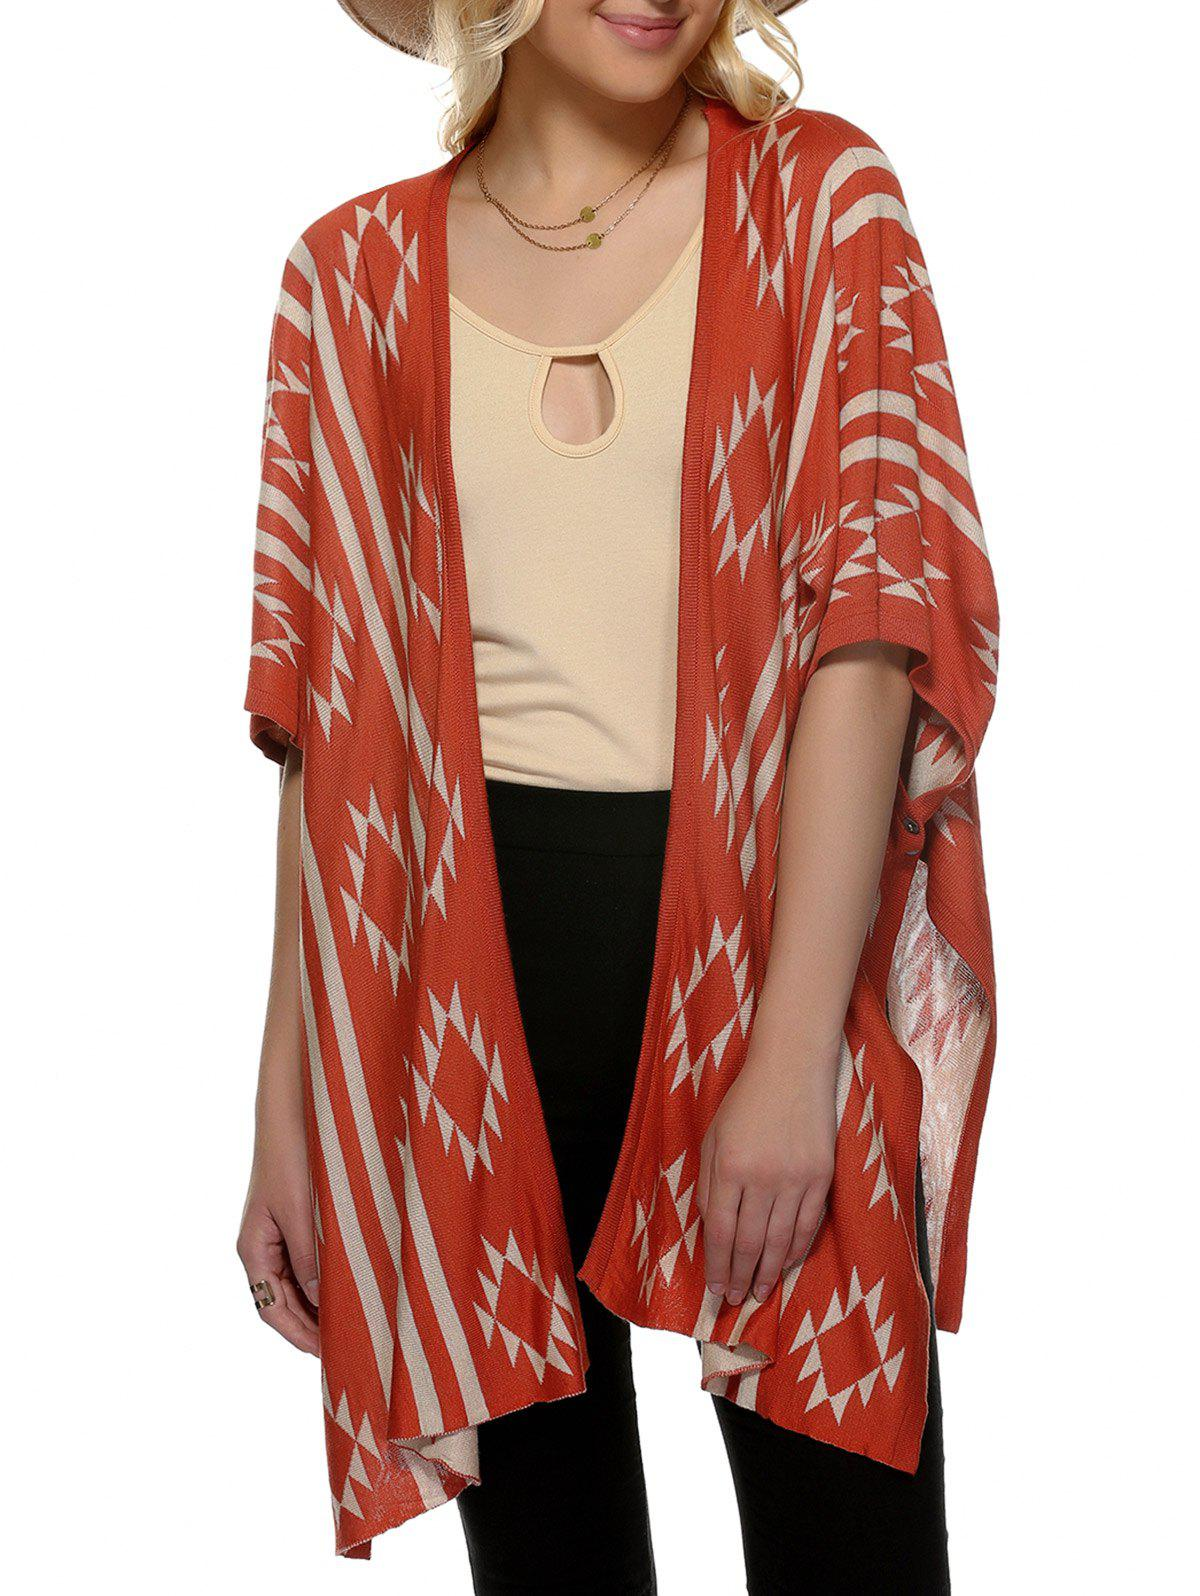 Loose Geometric Print Collarless 3/4 Sleeve Cardigan - JACINTH ONE SIZE